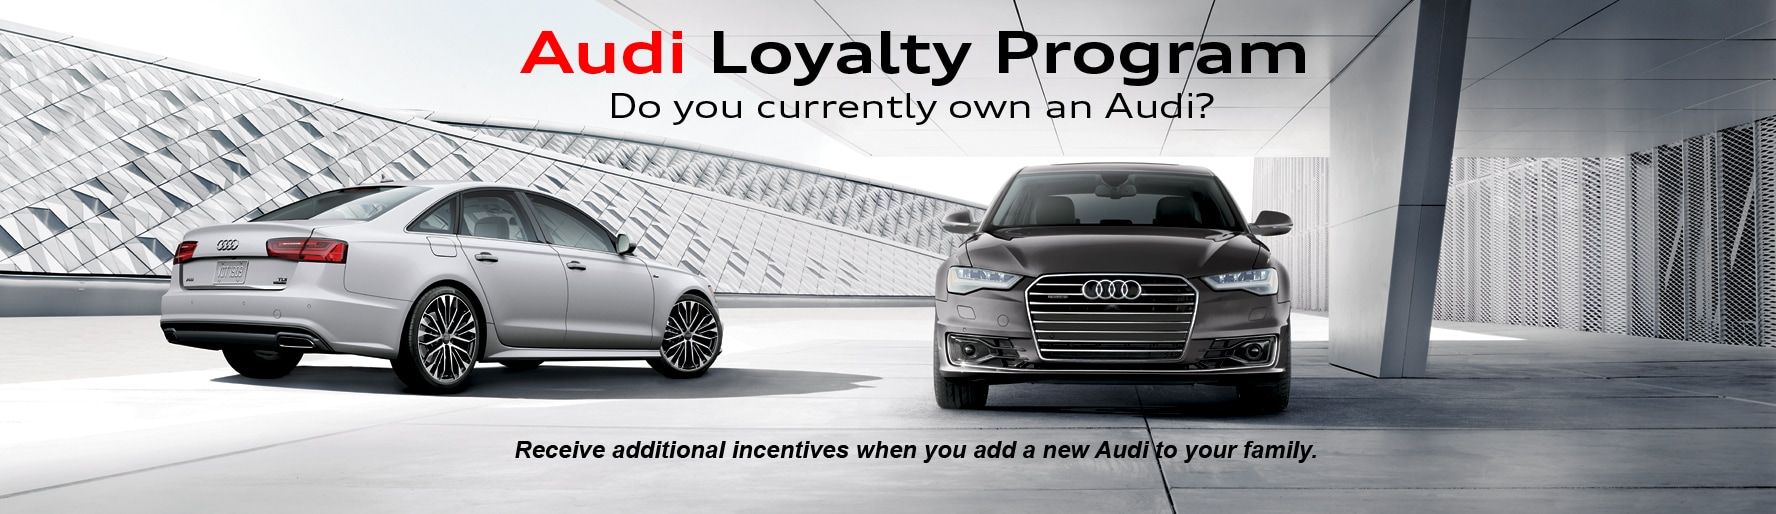 New And Used Audi Dealer Roanoke Audi Roanoke - Audi loyalty